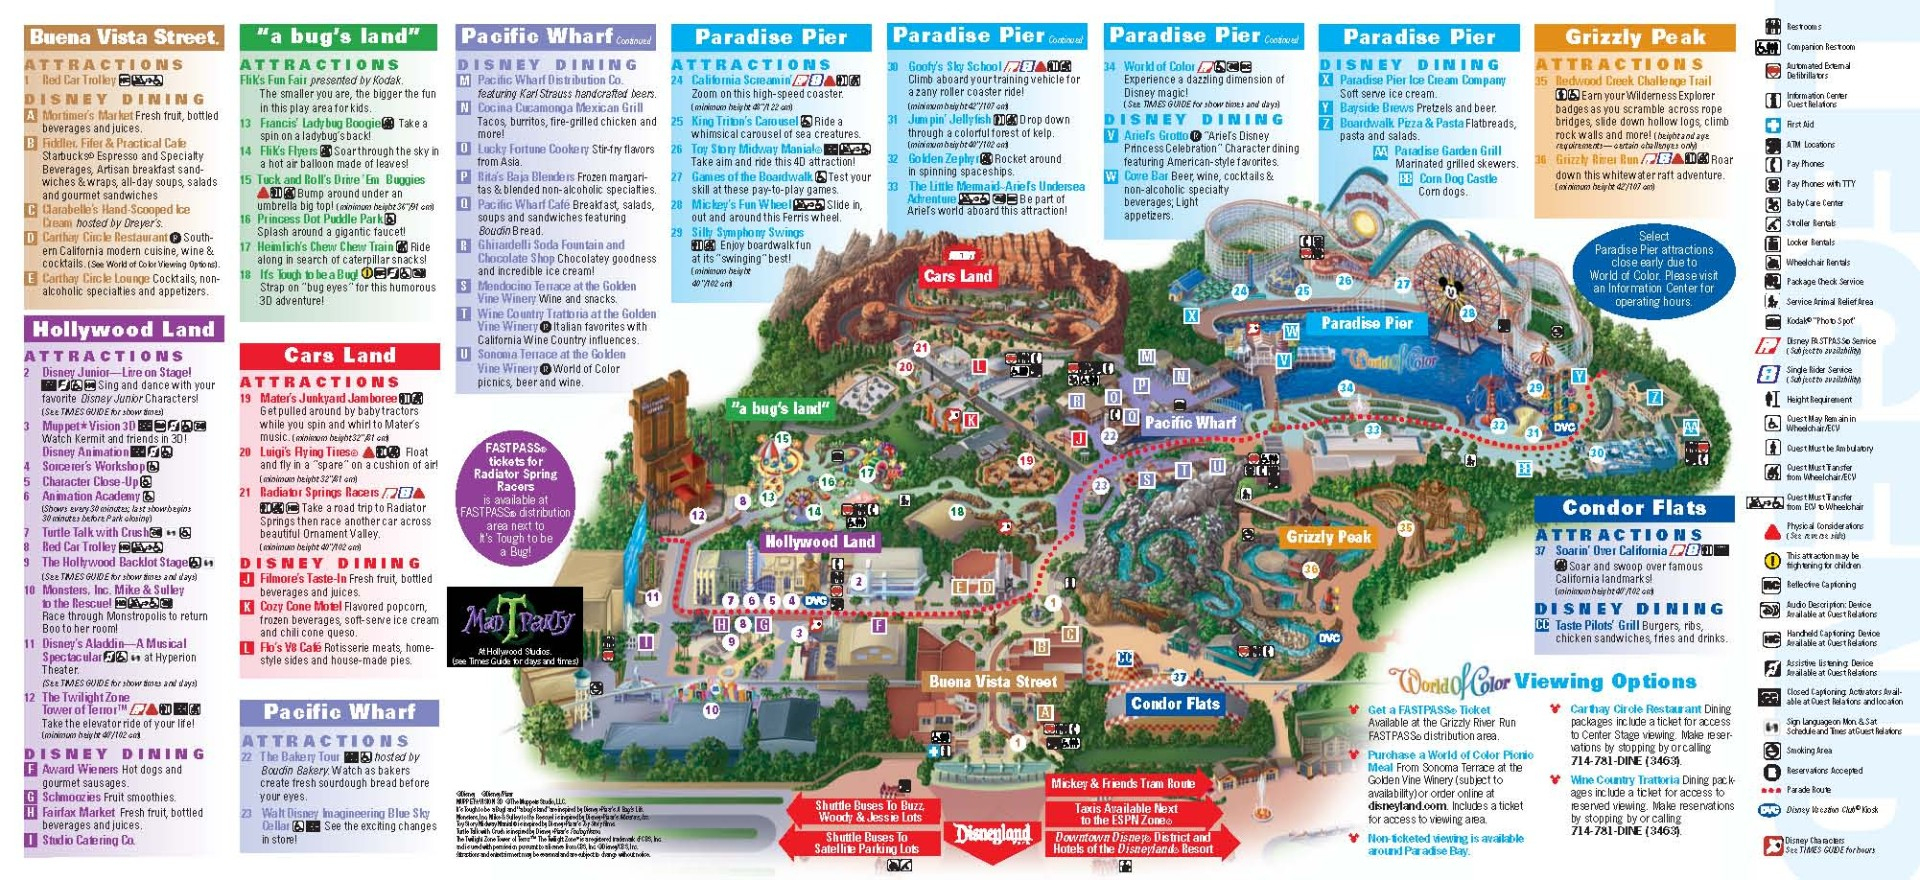 California Adventure Map Pdf - Klipy - California Adventure Map 2017 Pdf